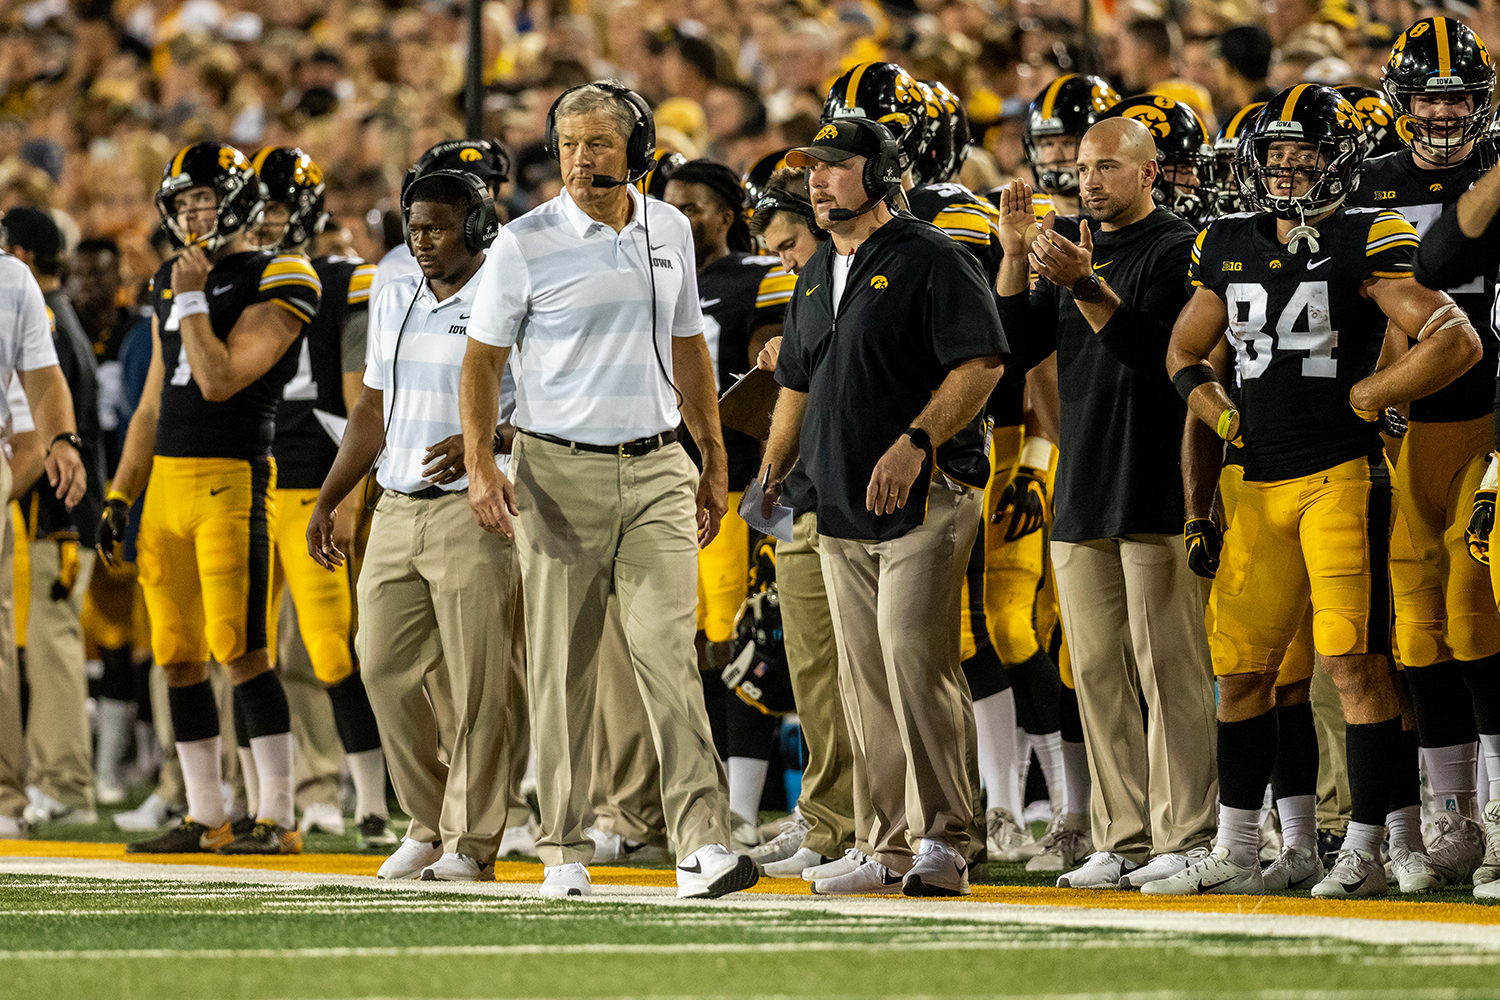 Iowa head coach Kirk Ferentz paces the sidelines during a game against Northern Iowa at Kinnick Stadium on Saturday, Sept. 15, 2018. The Hawkeyes defeated the Panthers 38–14.